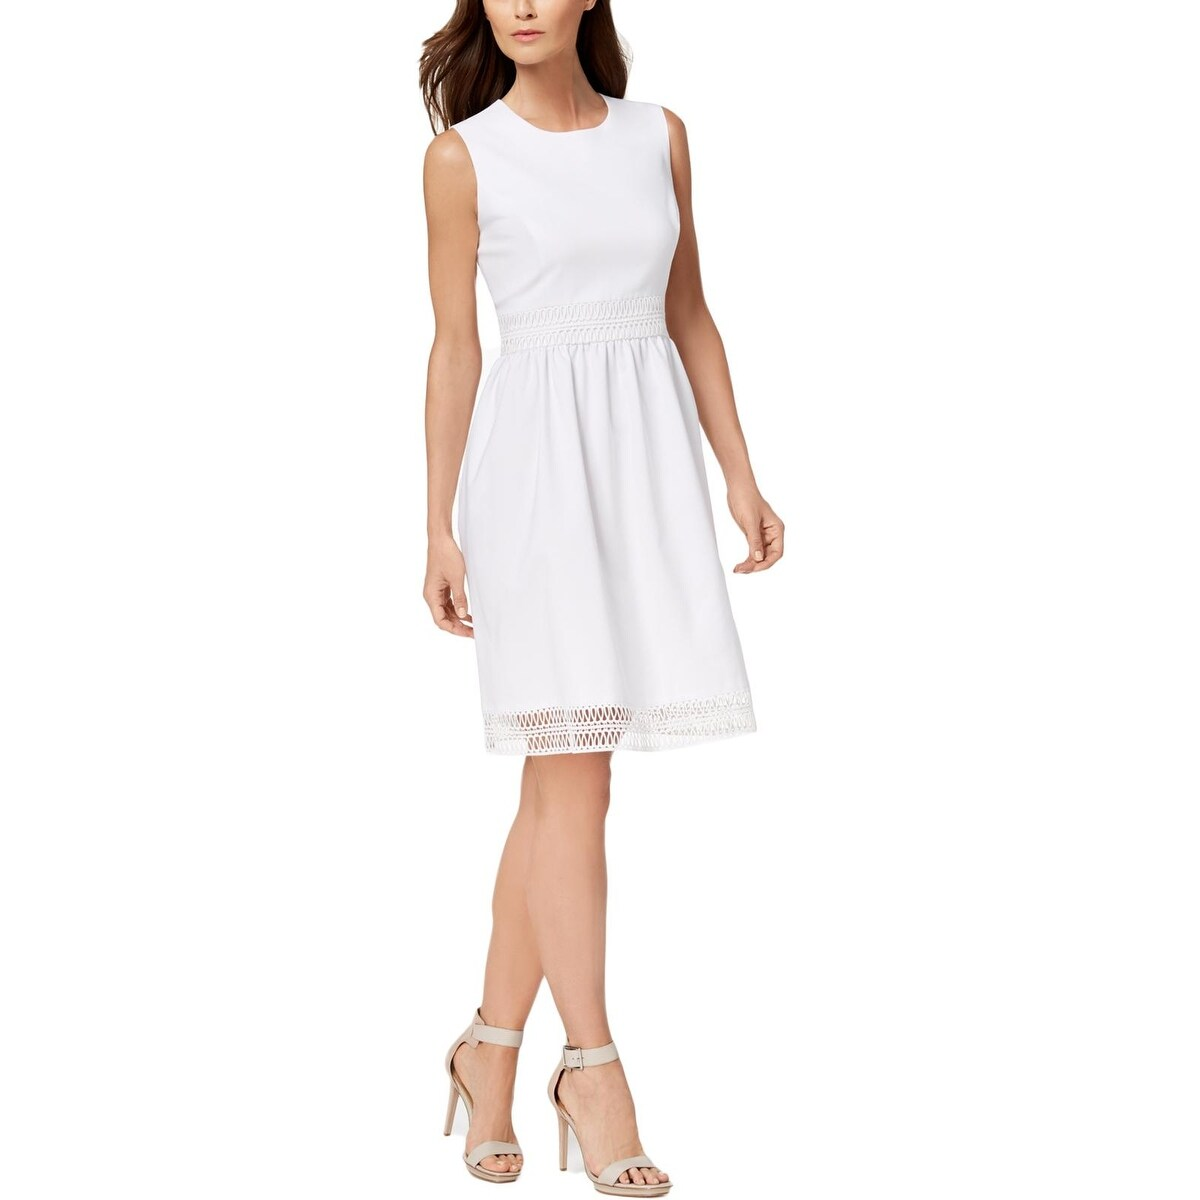 51a0d614 Calvin Klein Dresses | Find Great Women's Clothing Deals Shopping at  Overstock